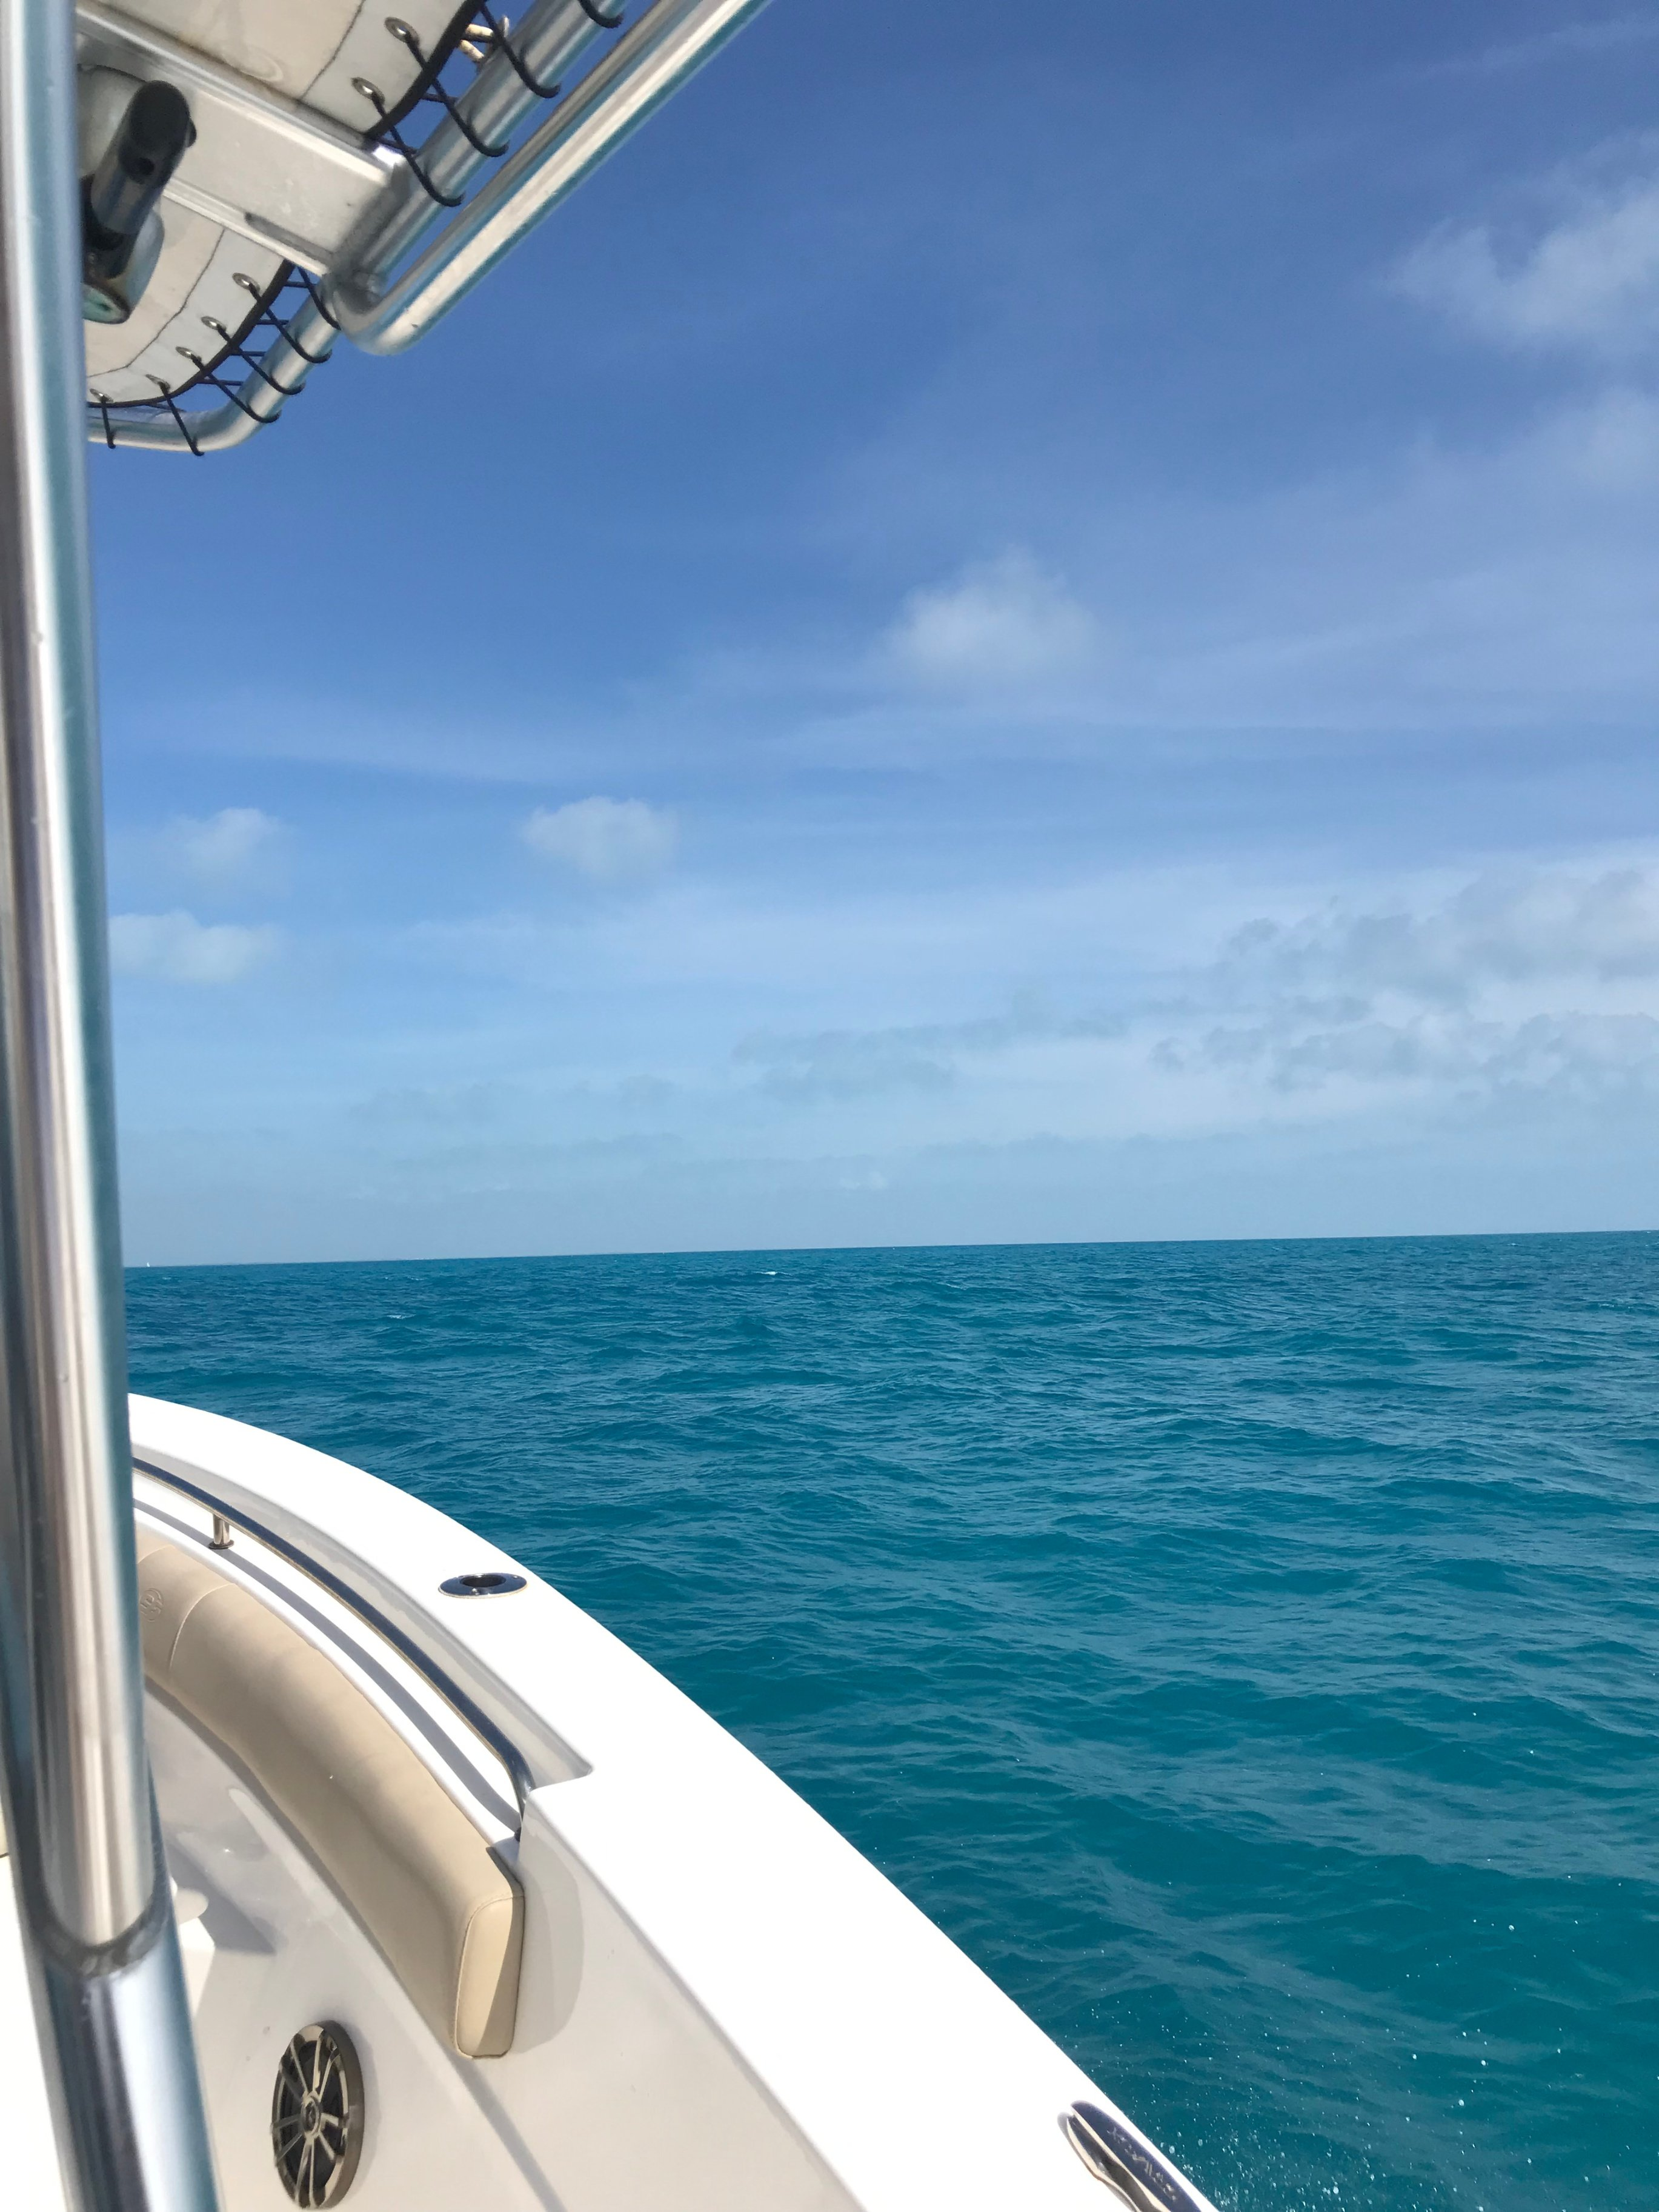 Snorkeling off the coast of Key West